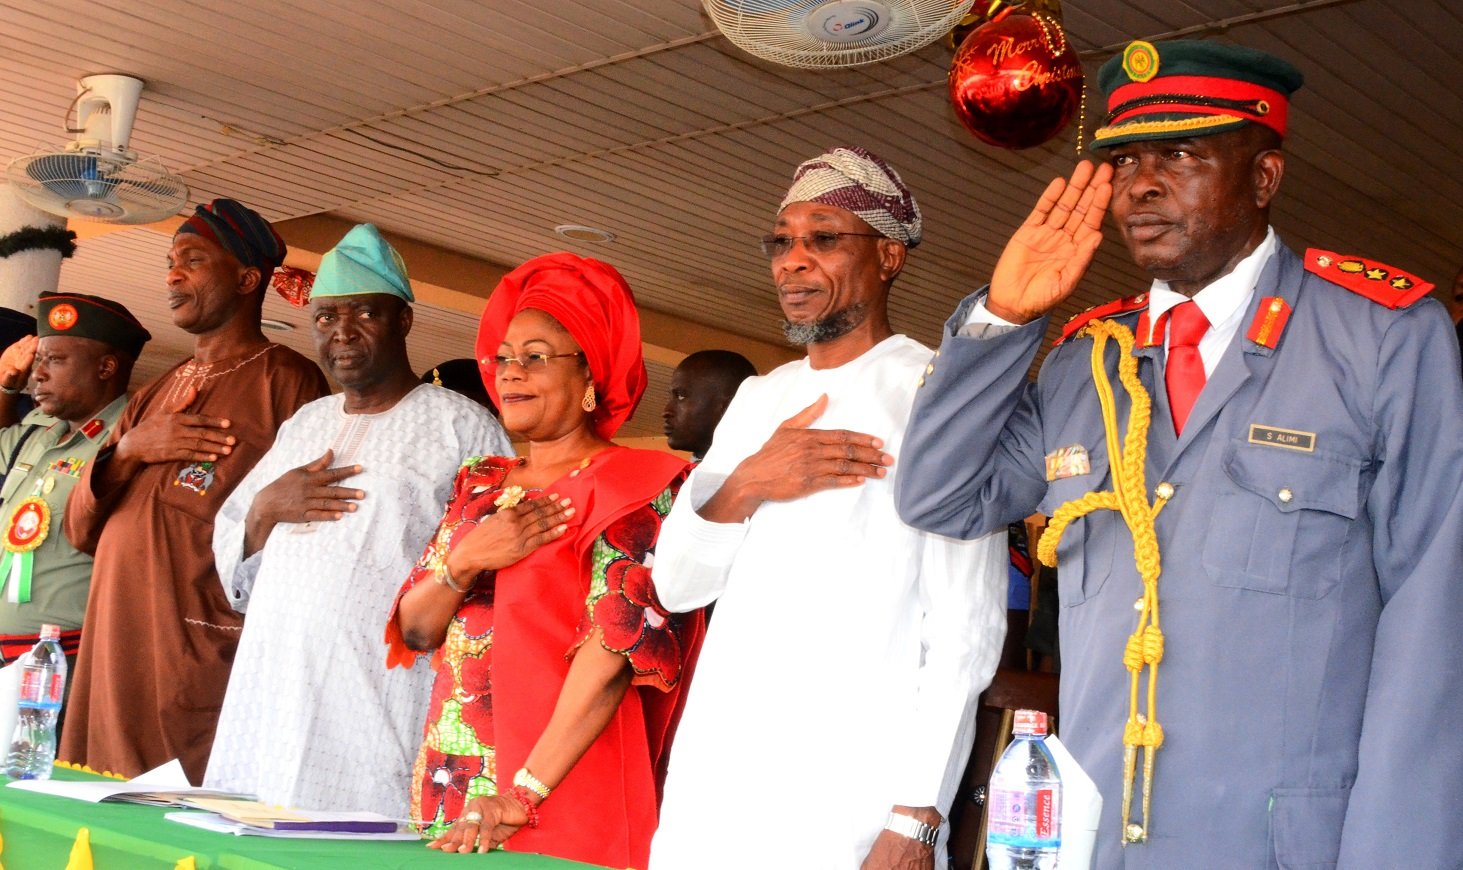 From right- Chairman of Legion, Col. Alimi Samotu, Governor State of Osun, Ogbeni Rauf Aregbesola, Deputy Governor, Mrs. Titi Laoye-Tomori, Senator Bayo Salami, Secretary to the State Government, Alhaji Moshood Adeoti and Commandant Engineering Construction Company Ede, Brigadier General, AG Adeyemi Gbenga, during the Launching of 2015 Emblem of the Armed Forces Remembrance Day Celebration at Government House Osogbo, State of Osun, on Tuesday 6/01/2015.